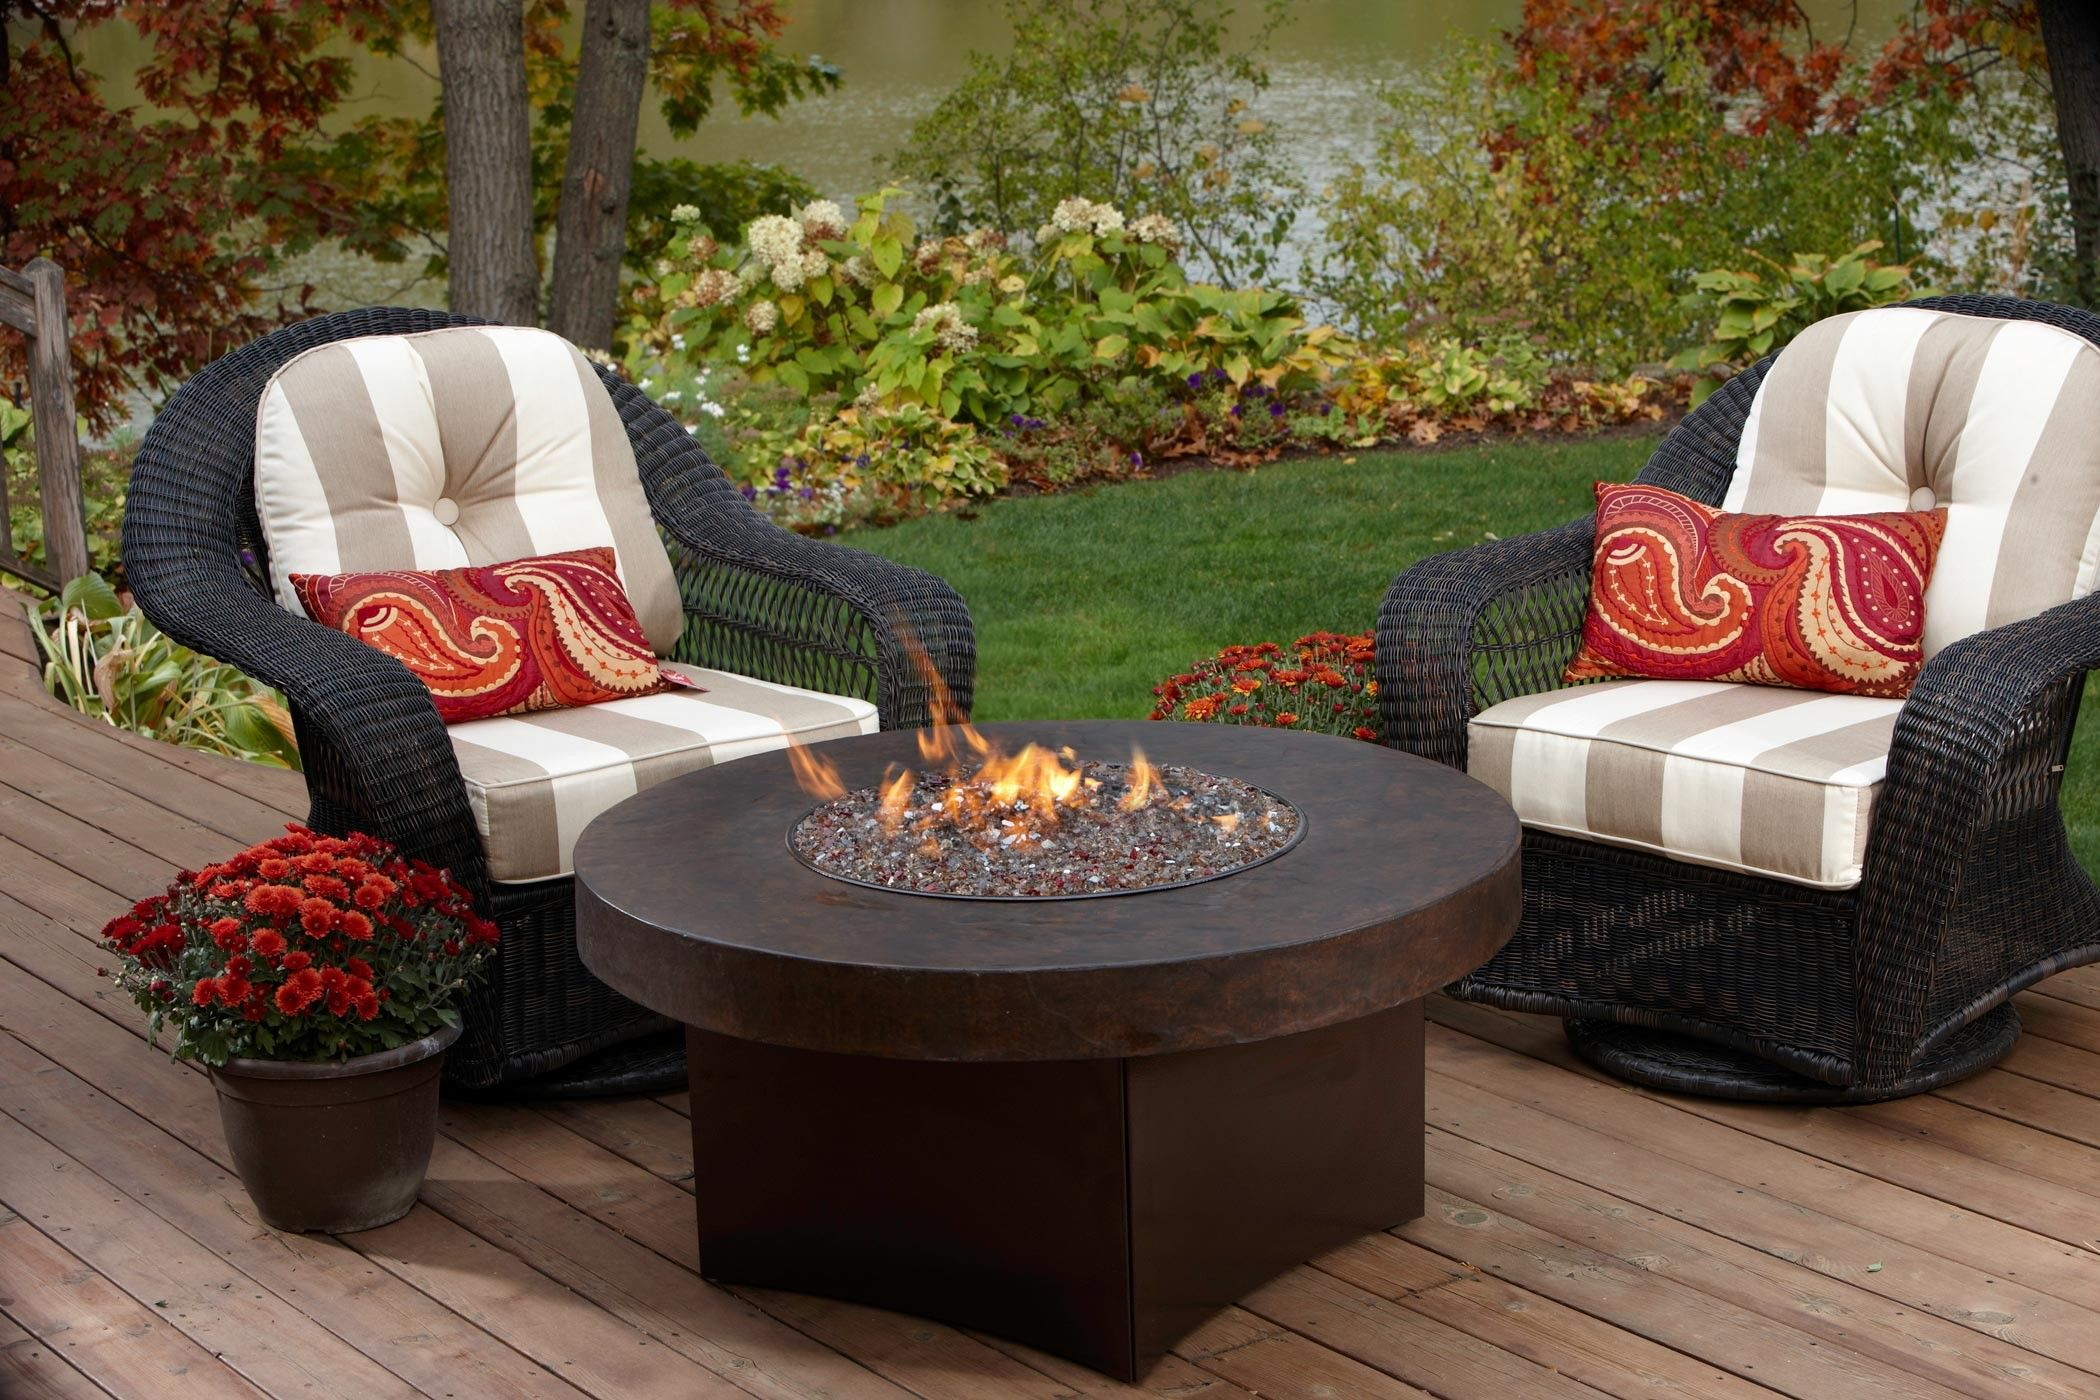 You Donu0027t Need To Spend A Fortune To Have A Relaxing Fire Pit / Deck!